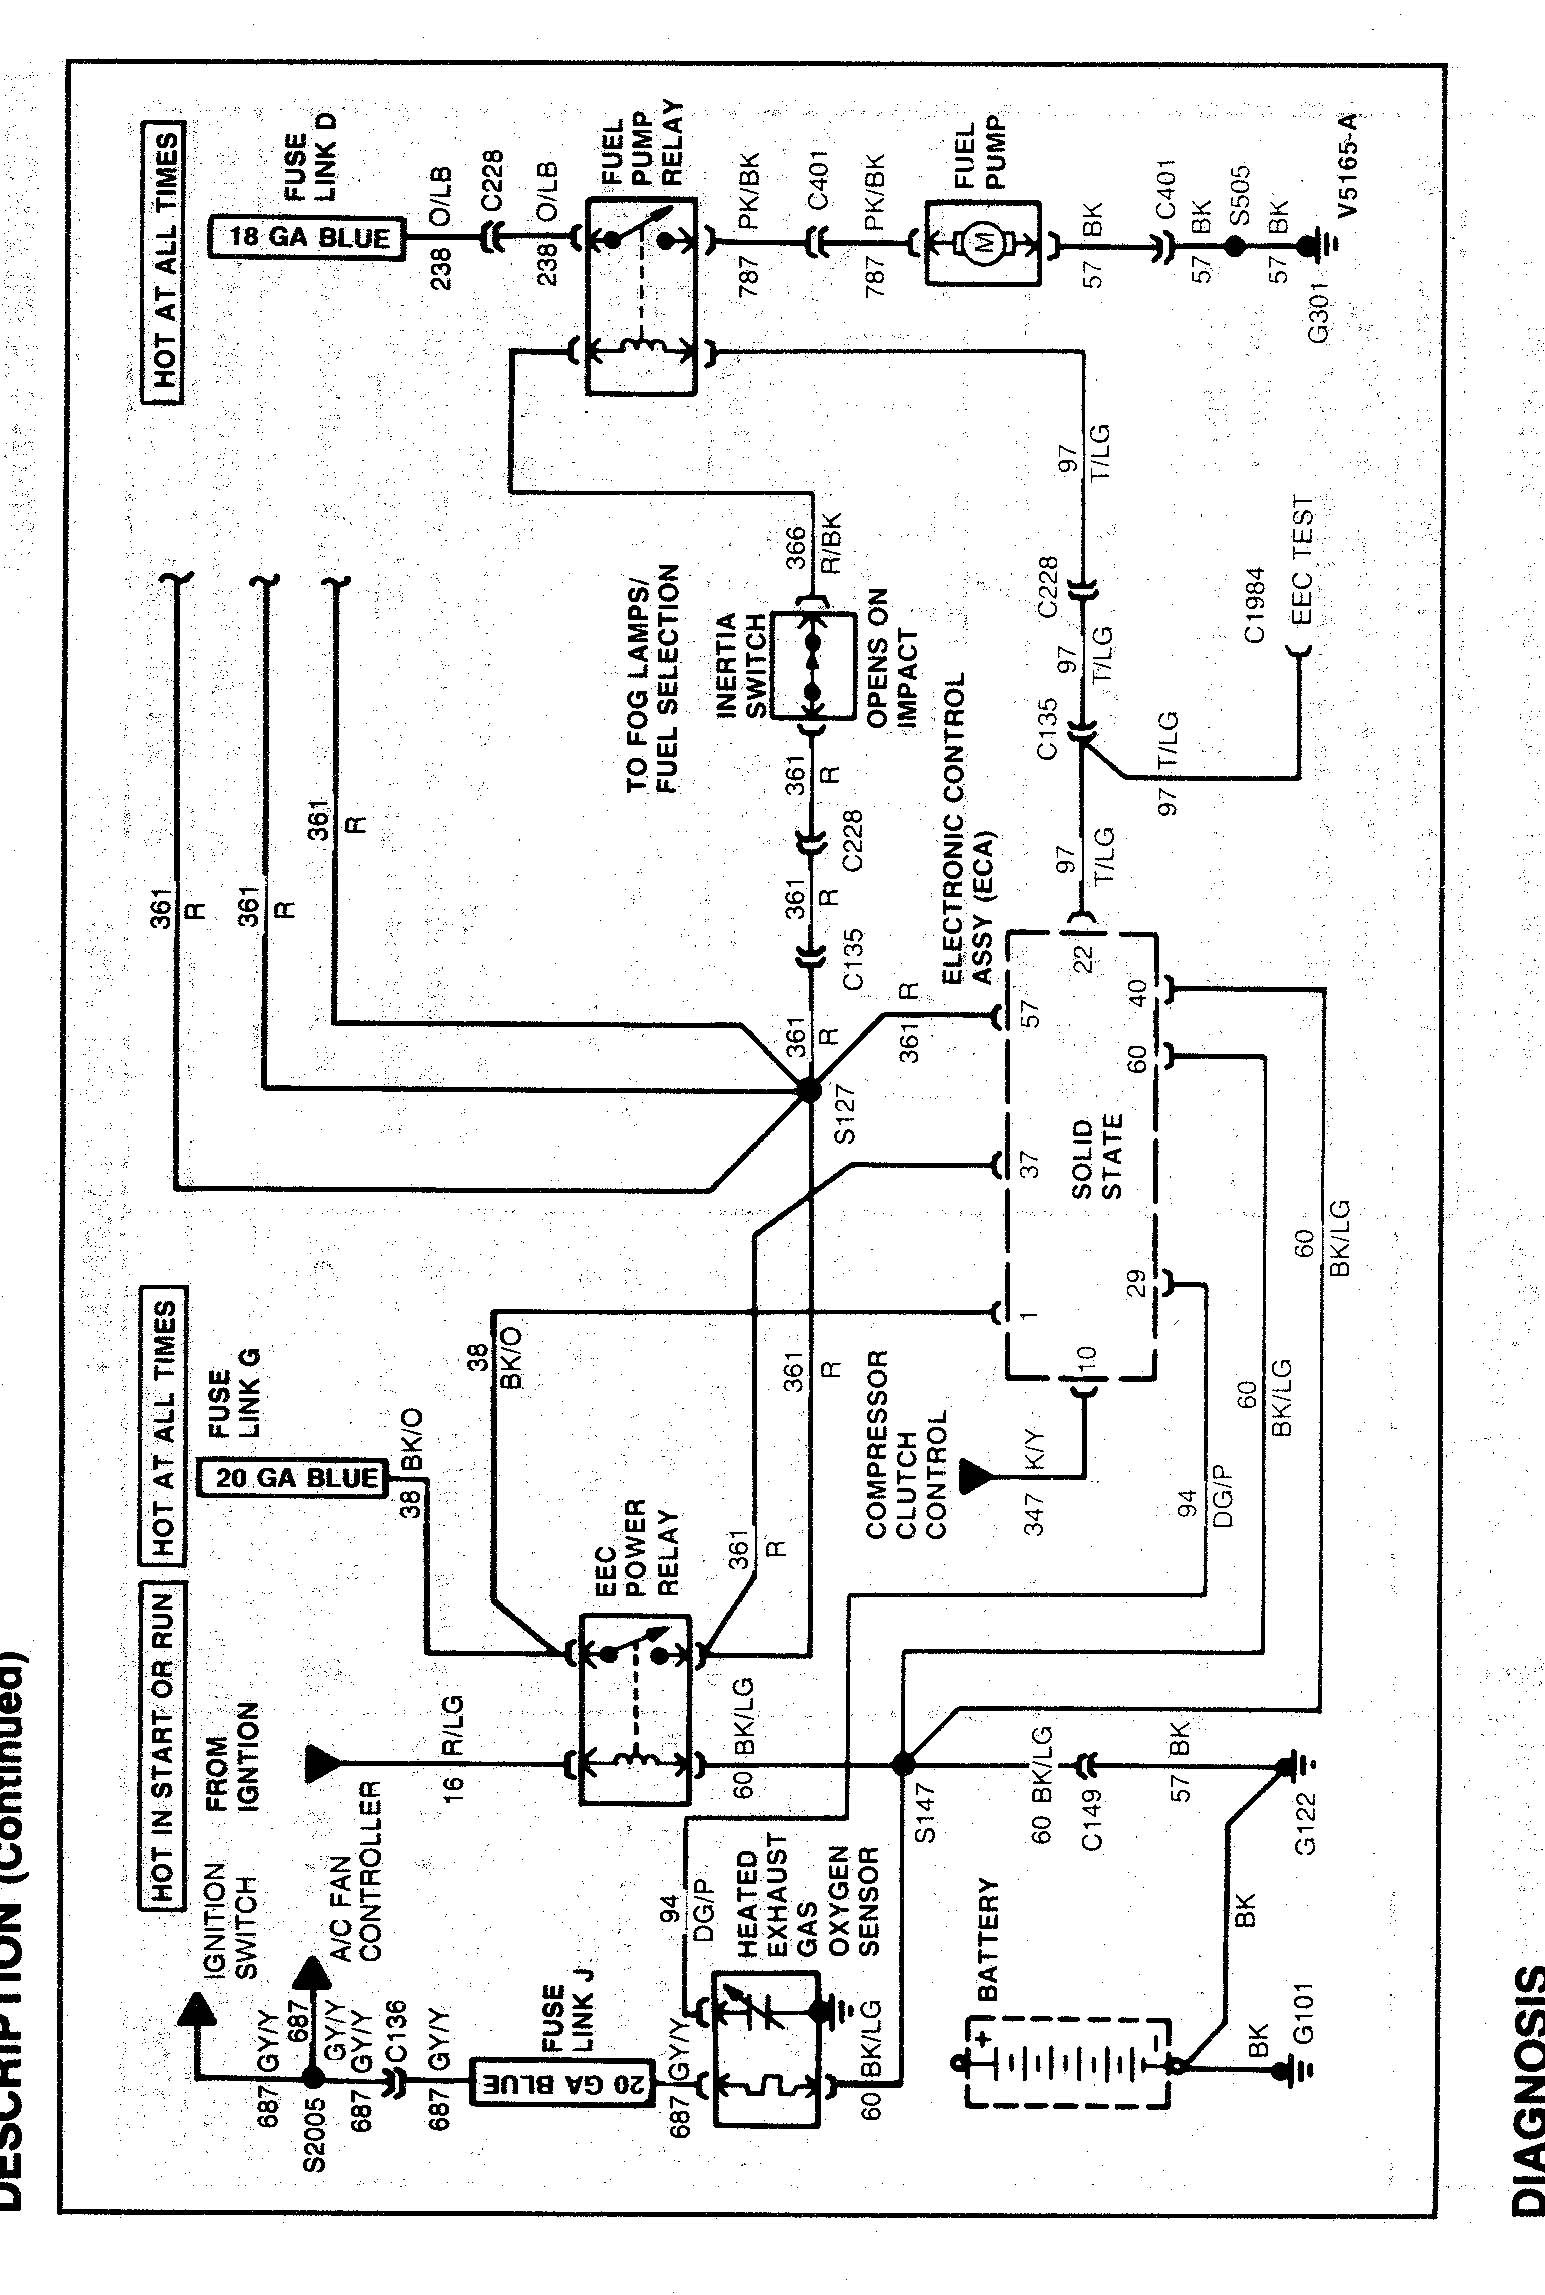 2001 Ford Taurus Fuel Pump Wiring Diagram Wiring Diagram